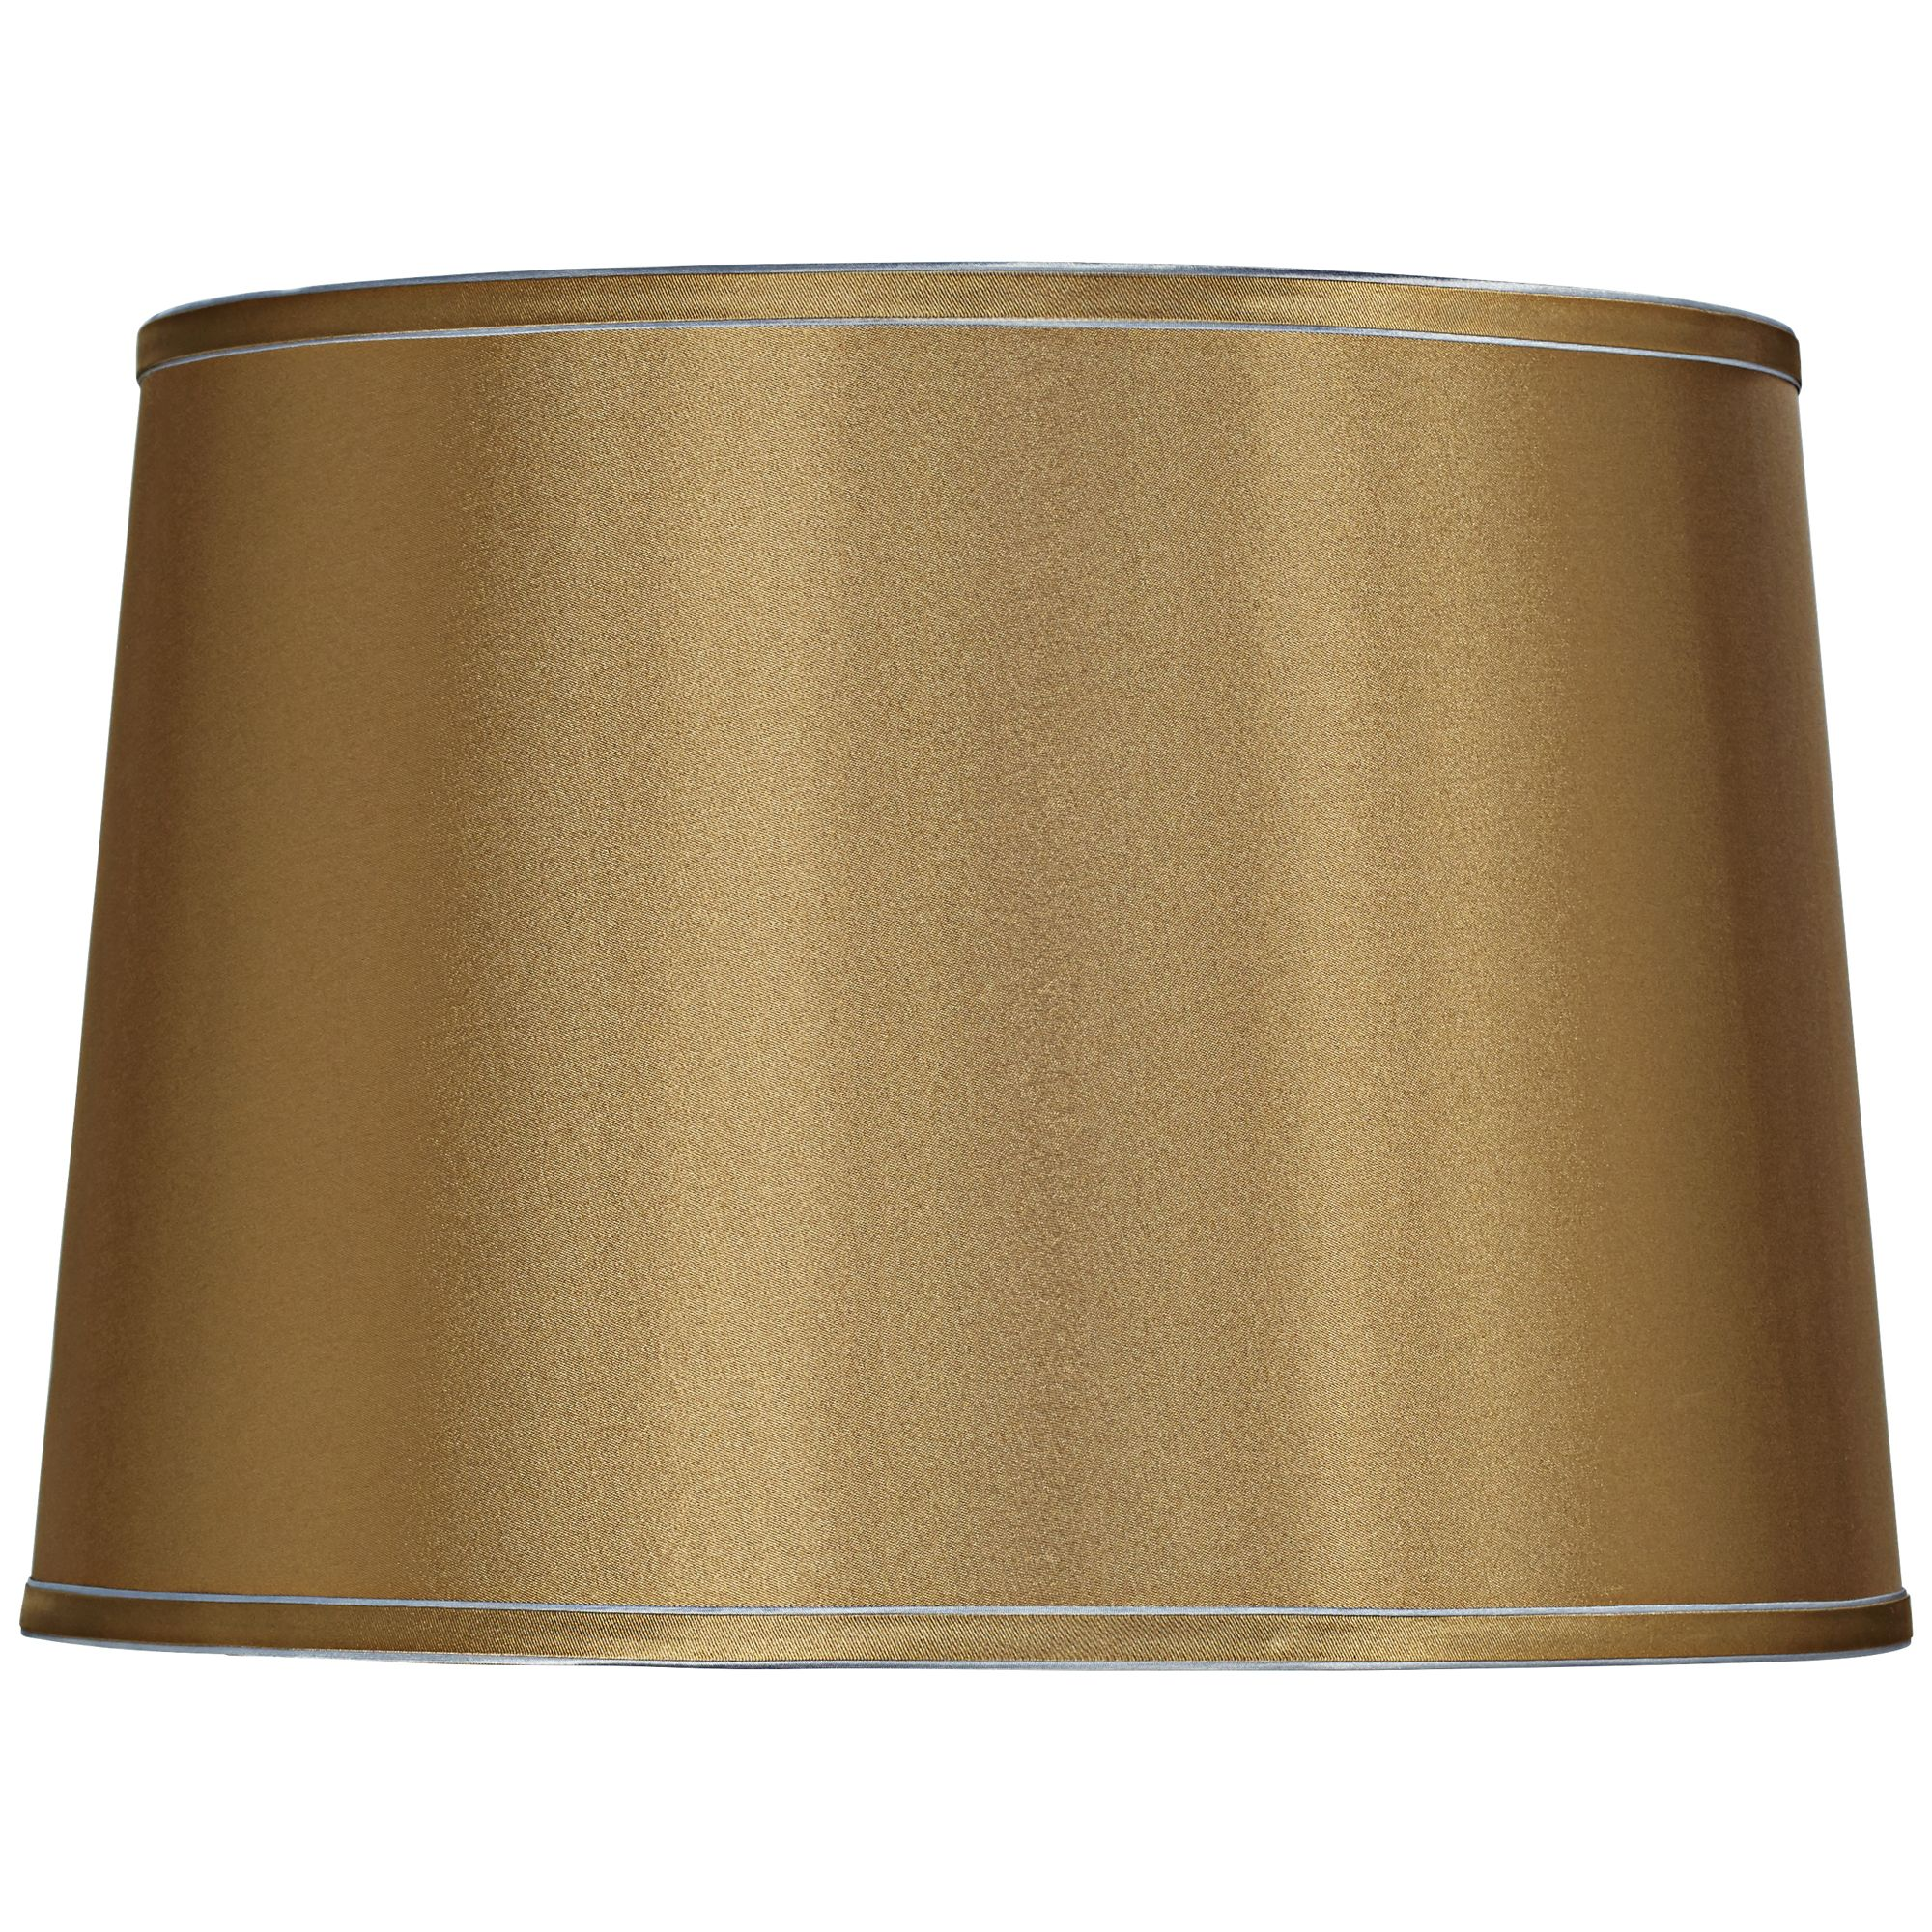 Brentwood Sydnee Gold with Silver Trim Drum Shade 14x16x11 (Spider)